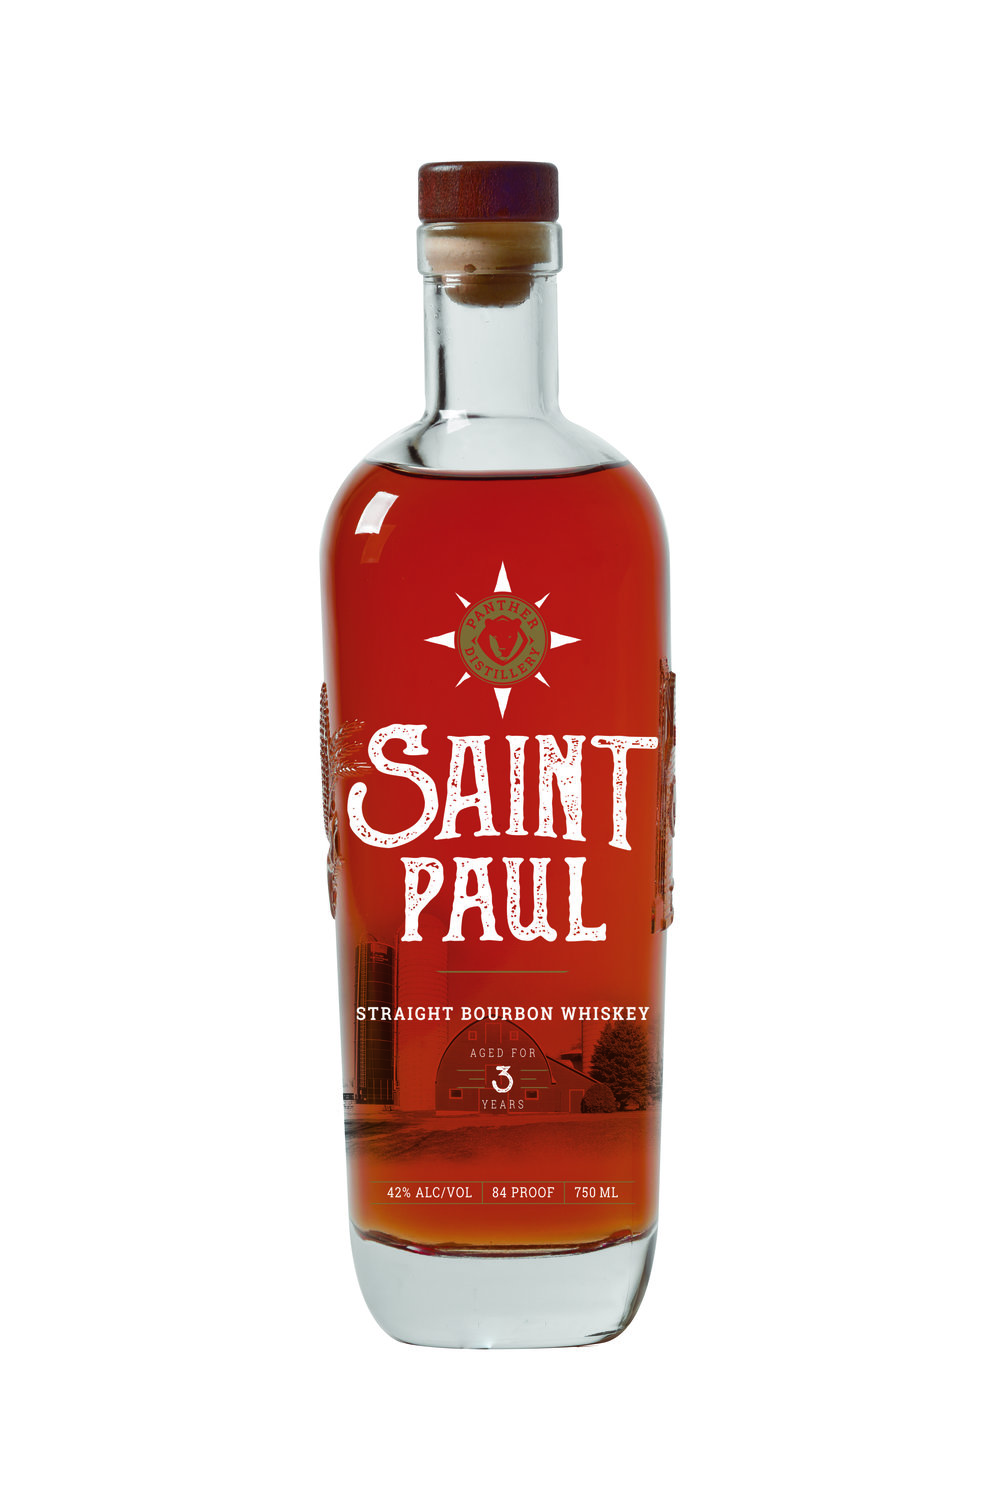 Saint Paul Bourbon Panther Distillery